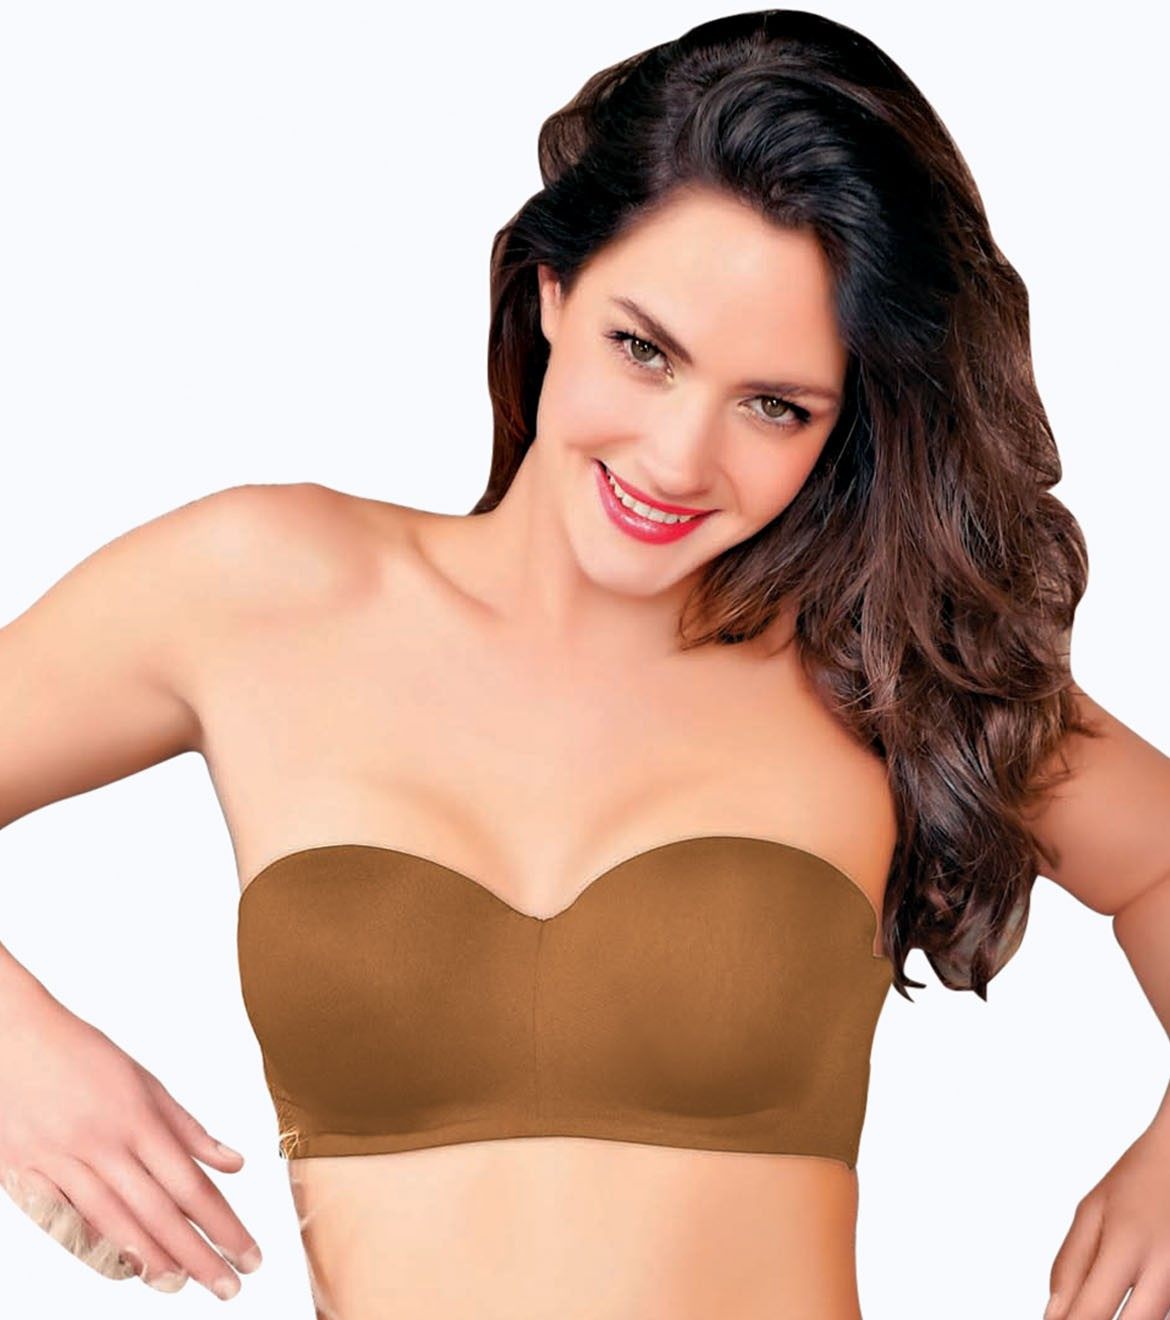 Enamor Women F074 Full Figure Strapless & Multi-Way Bra (34D,BUFF)